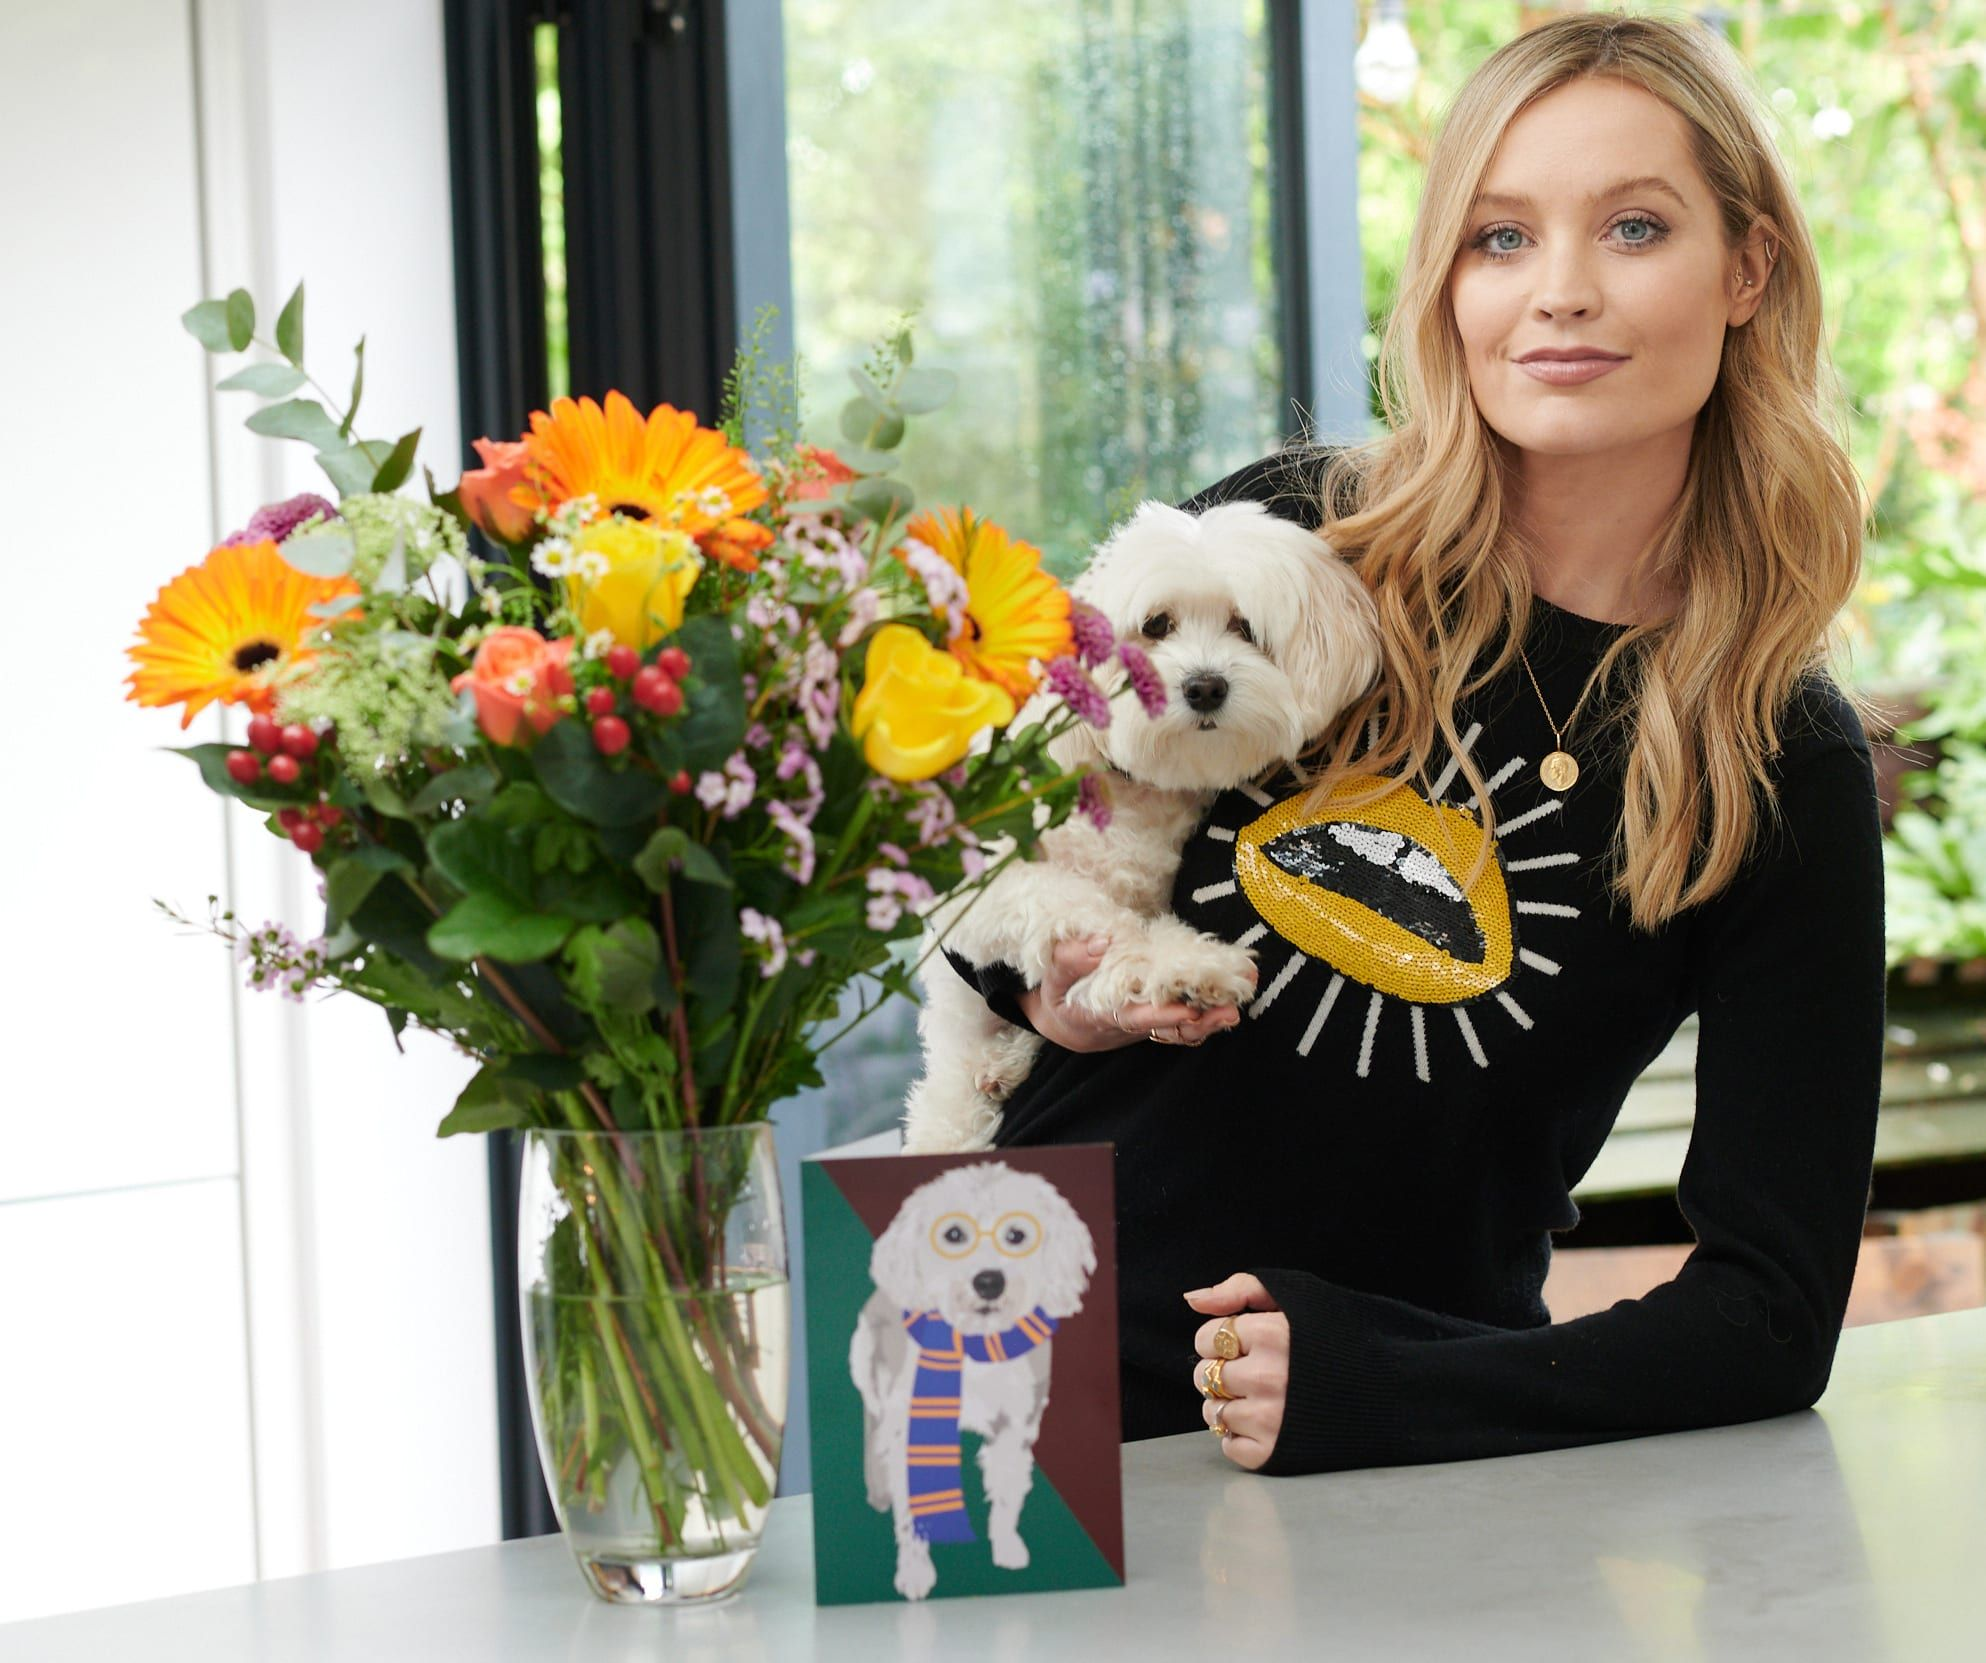 Laura Whitmore Collaborates with Moonpig to Create 'The Laura' Bouquet